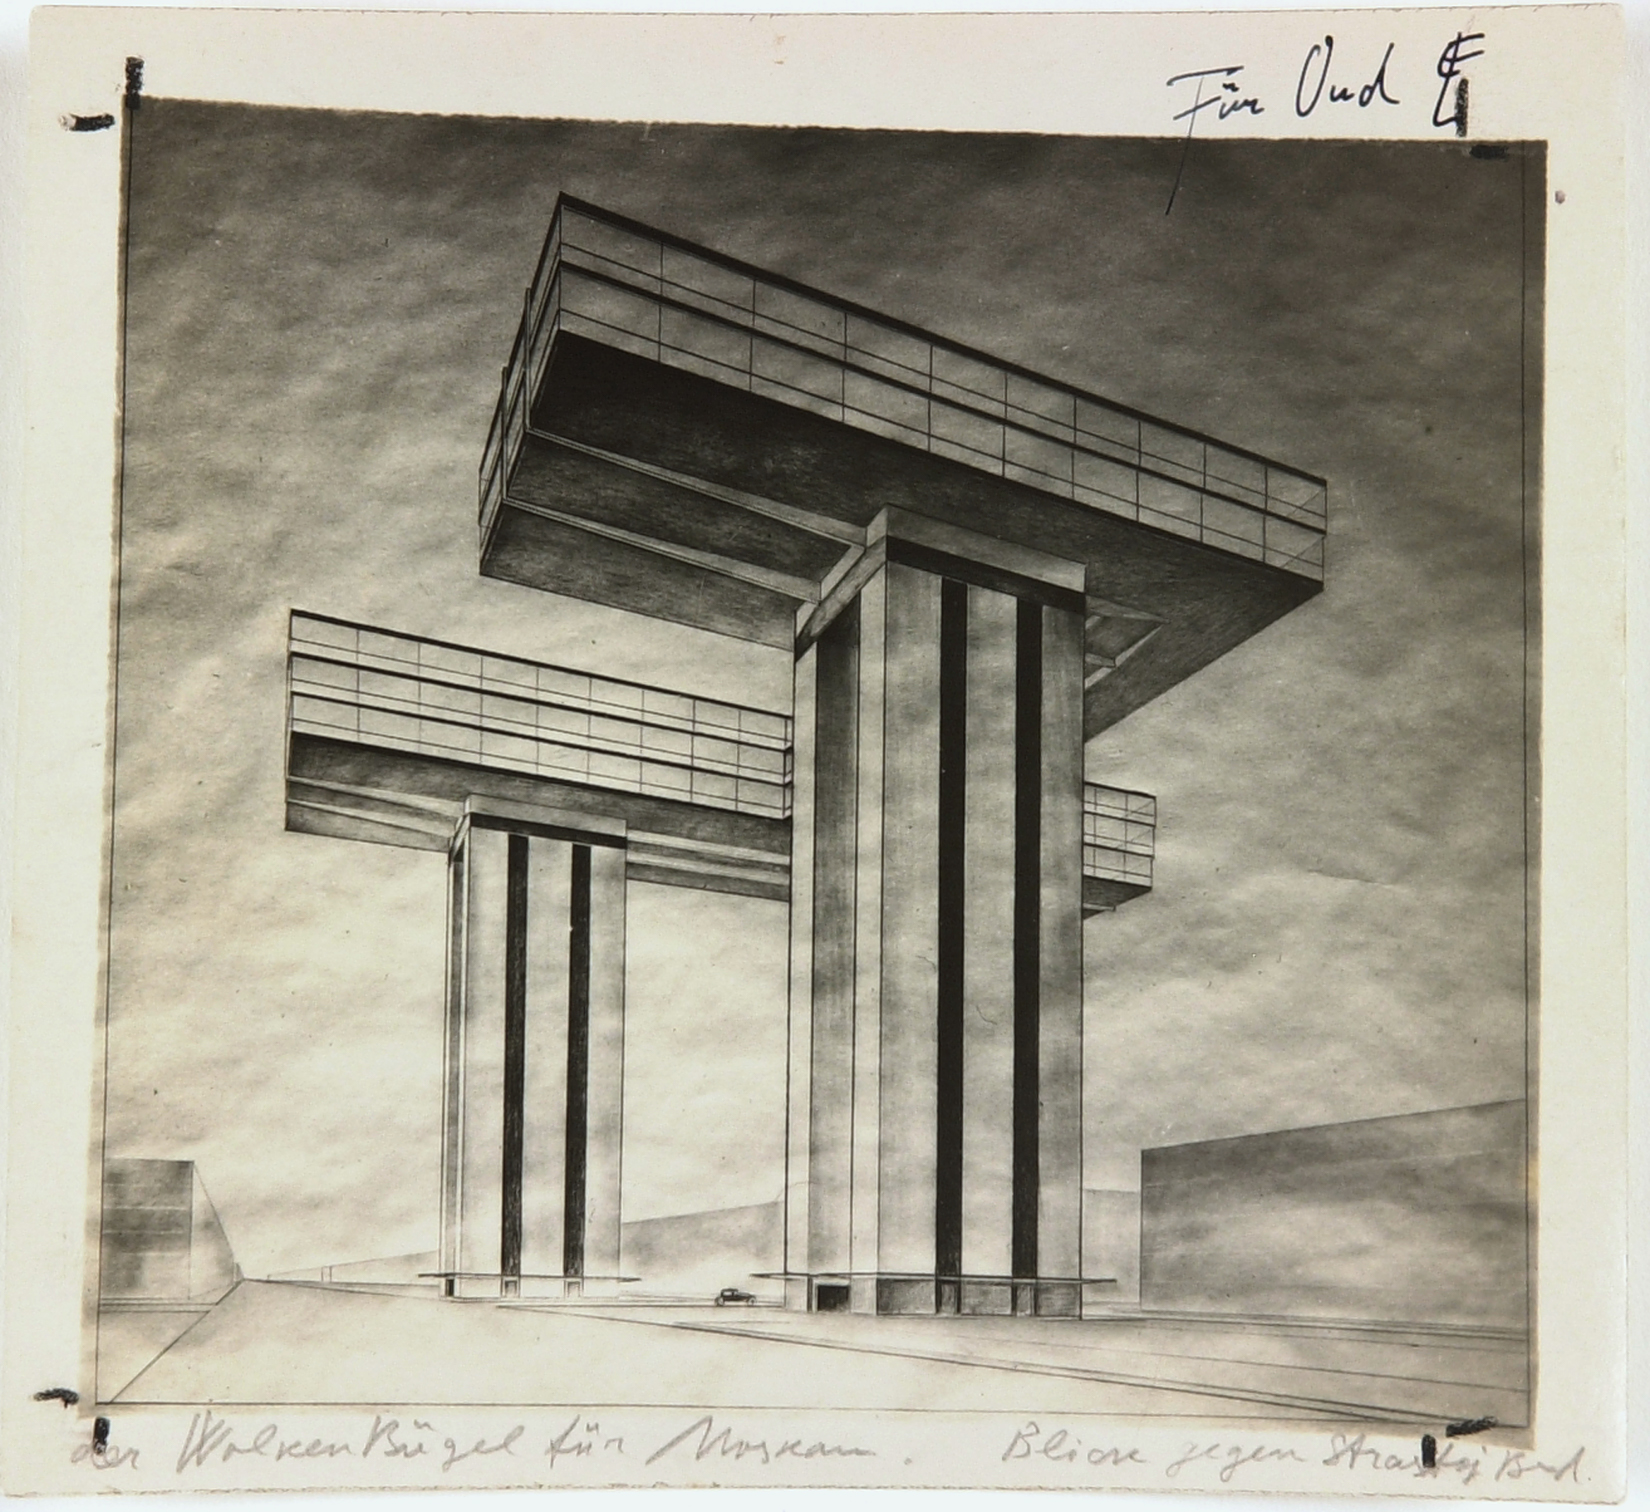 El Lissitzky, Photo by the artist of his design 'Cloud Iron. Ground Plan. View from Strastnoy Boulevard', 1925, black and white photography with annotations by the artist | © Van Abbemuseum, Eindhoven